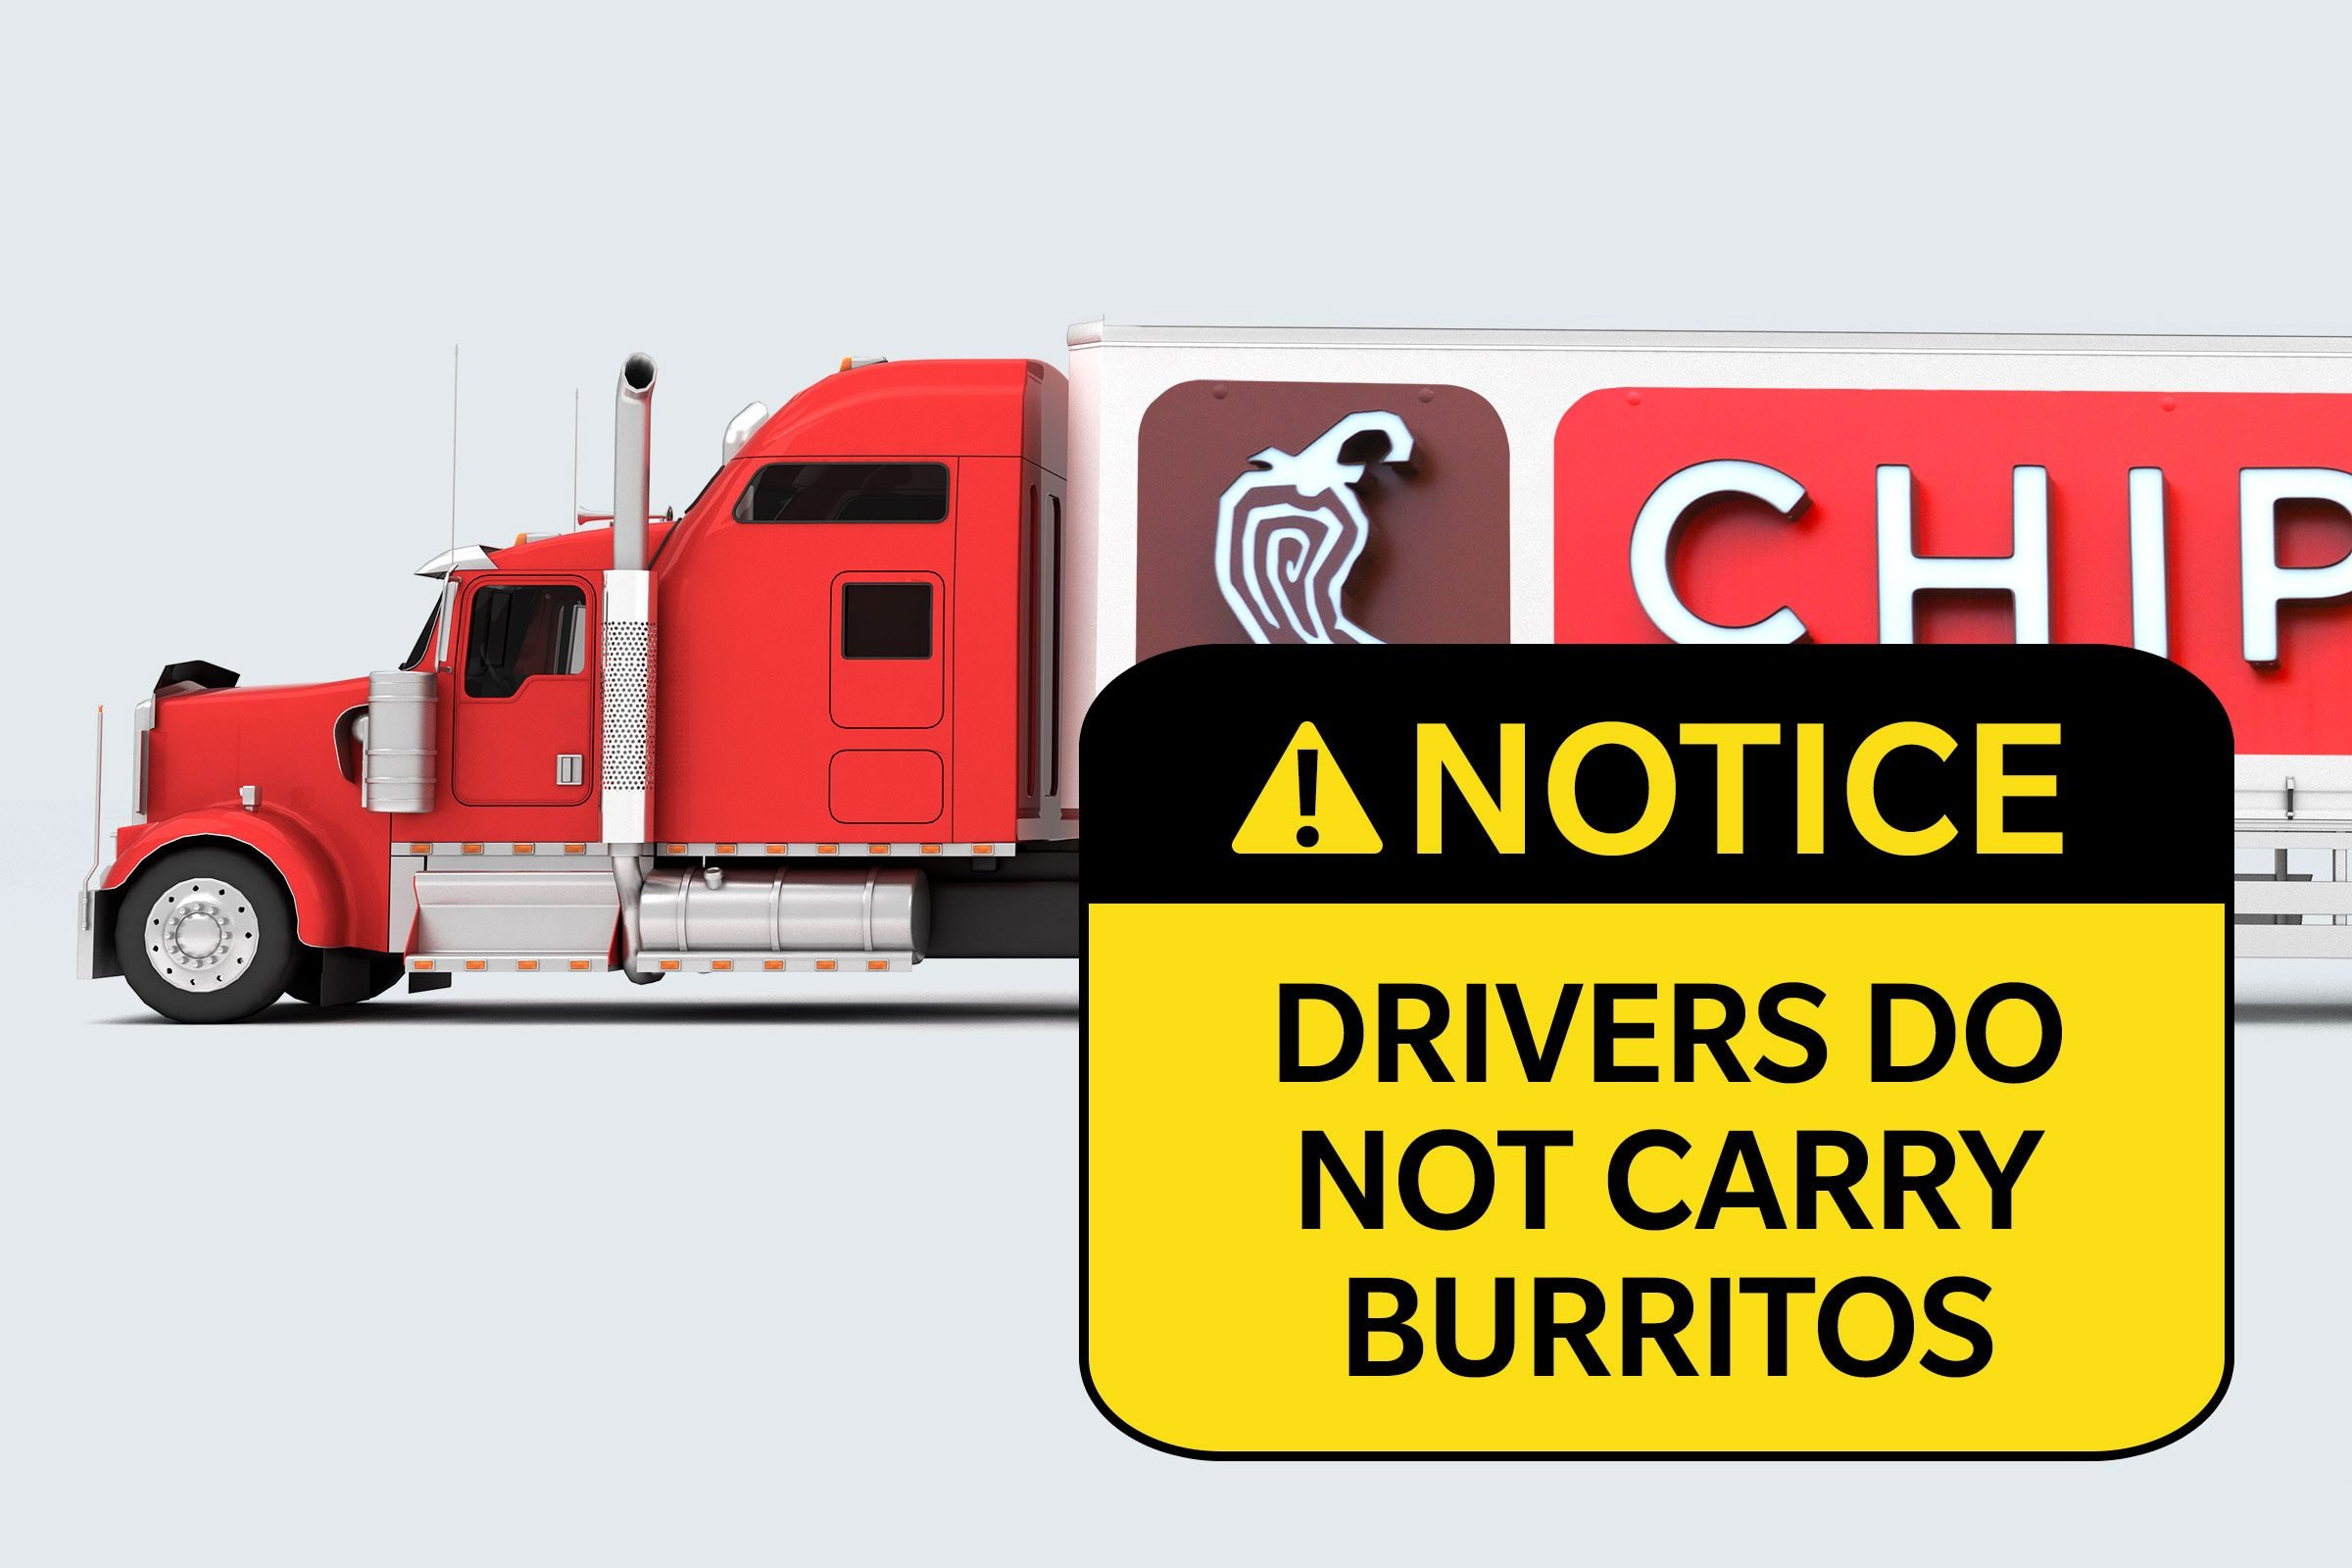 chipotle truck. notice: drivers do not carry burritos